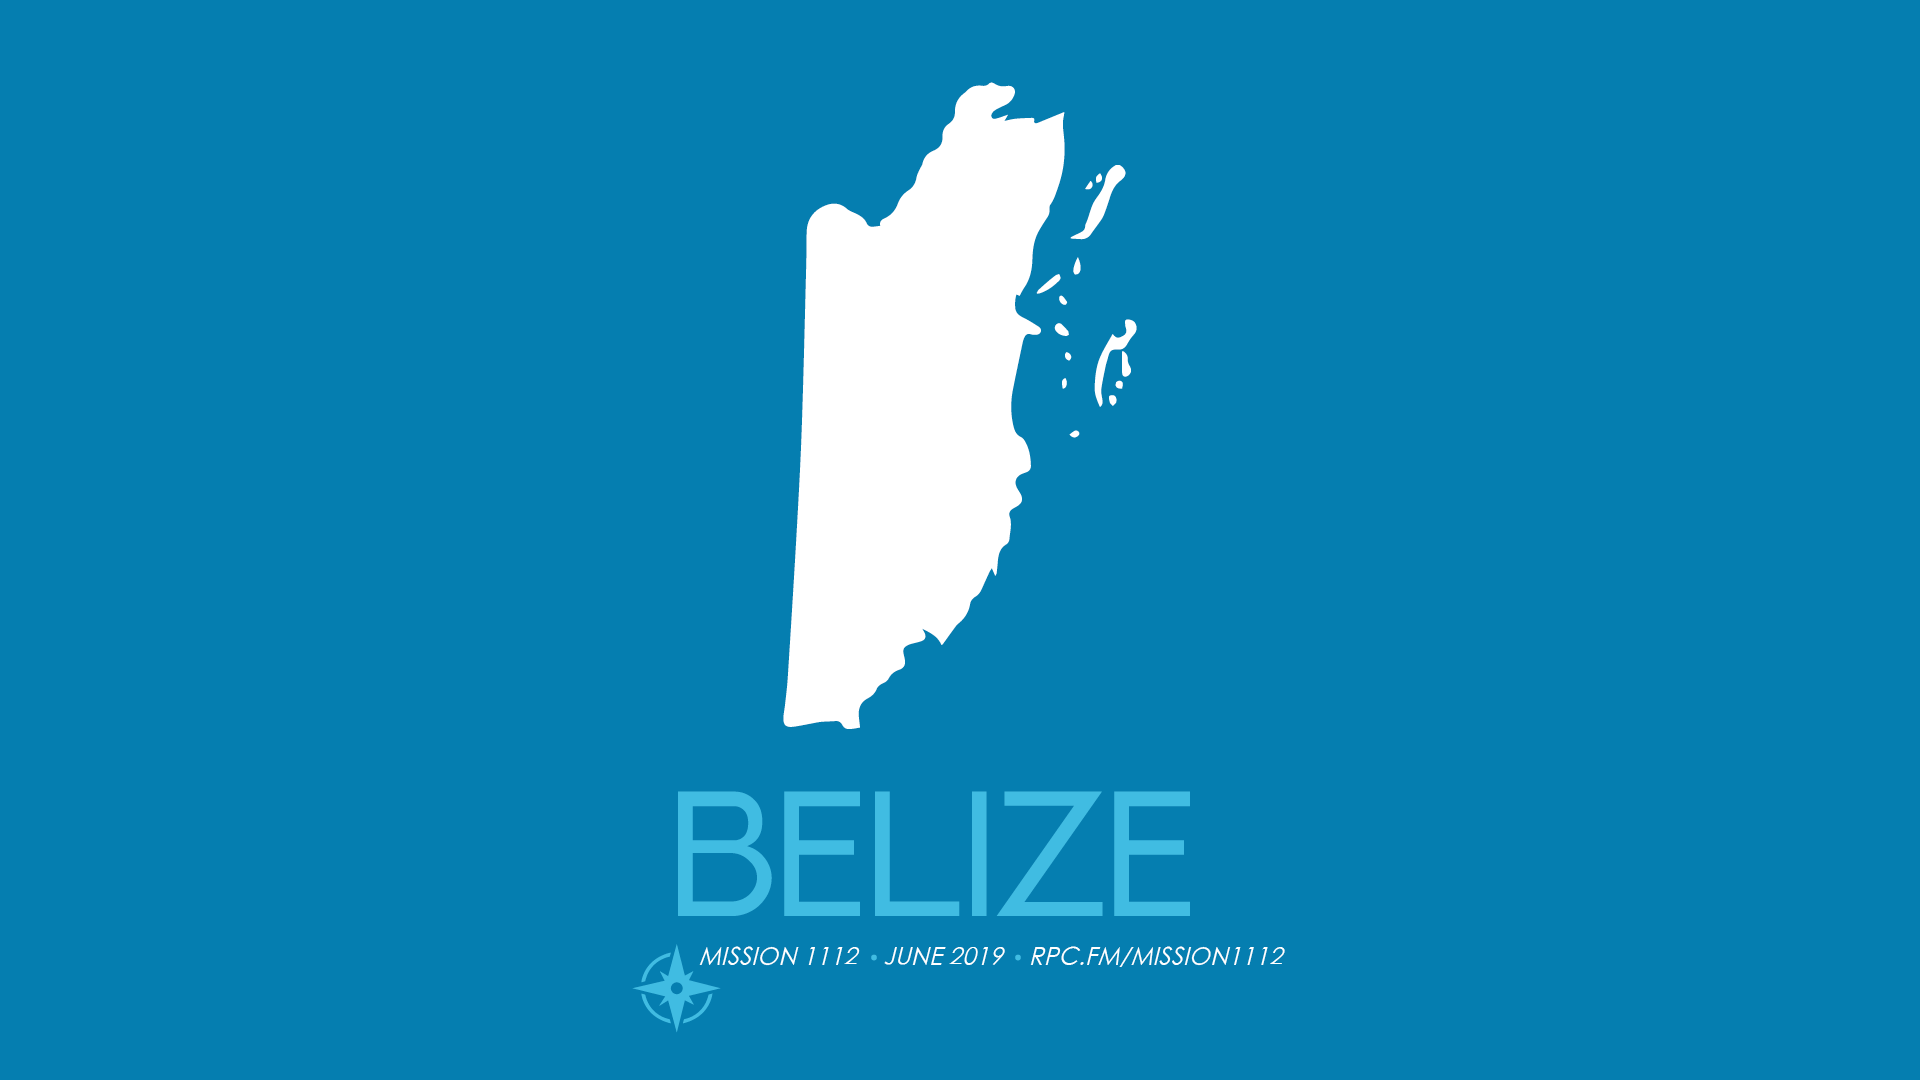 Belize Student Mission Trip